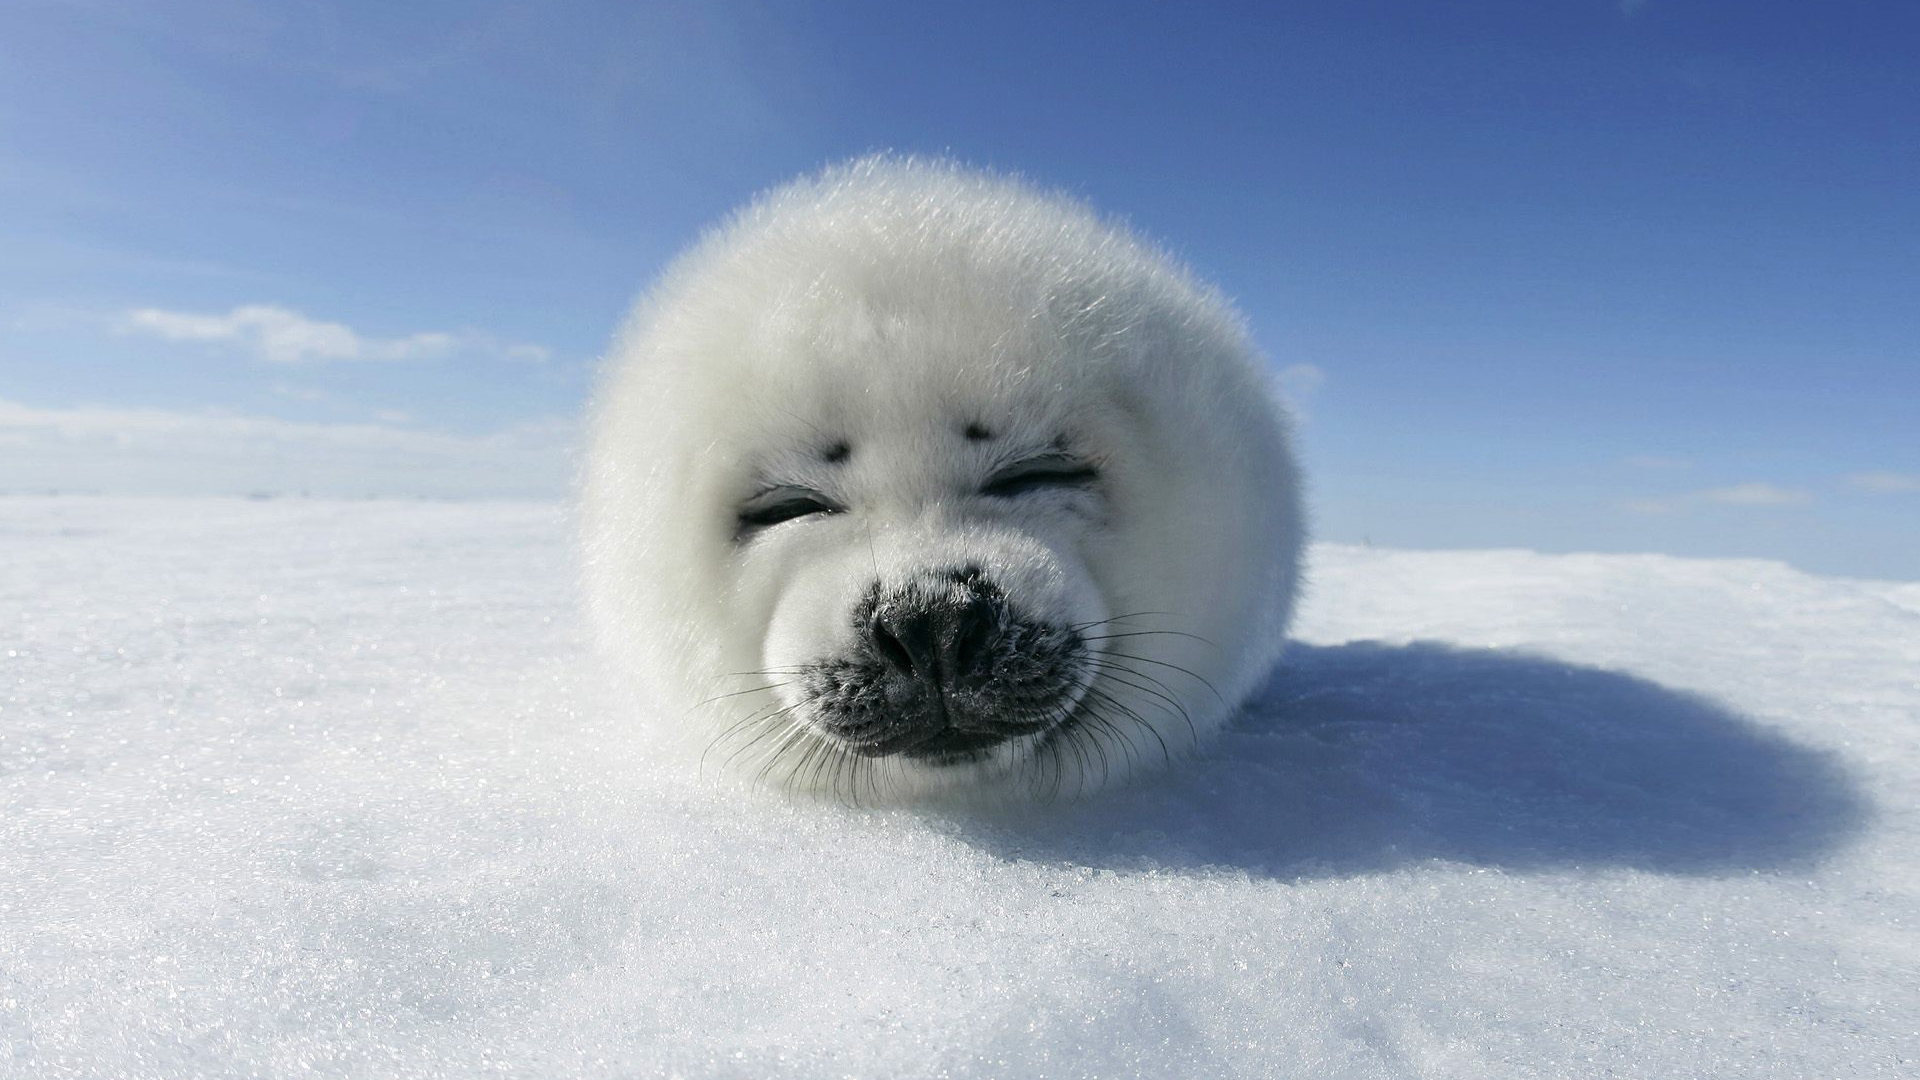 This is a Harp Seal wallpaper. This Harp Seal background can be used for